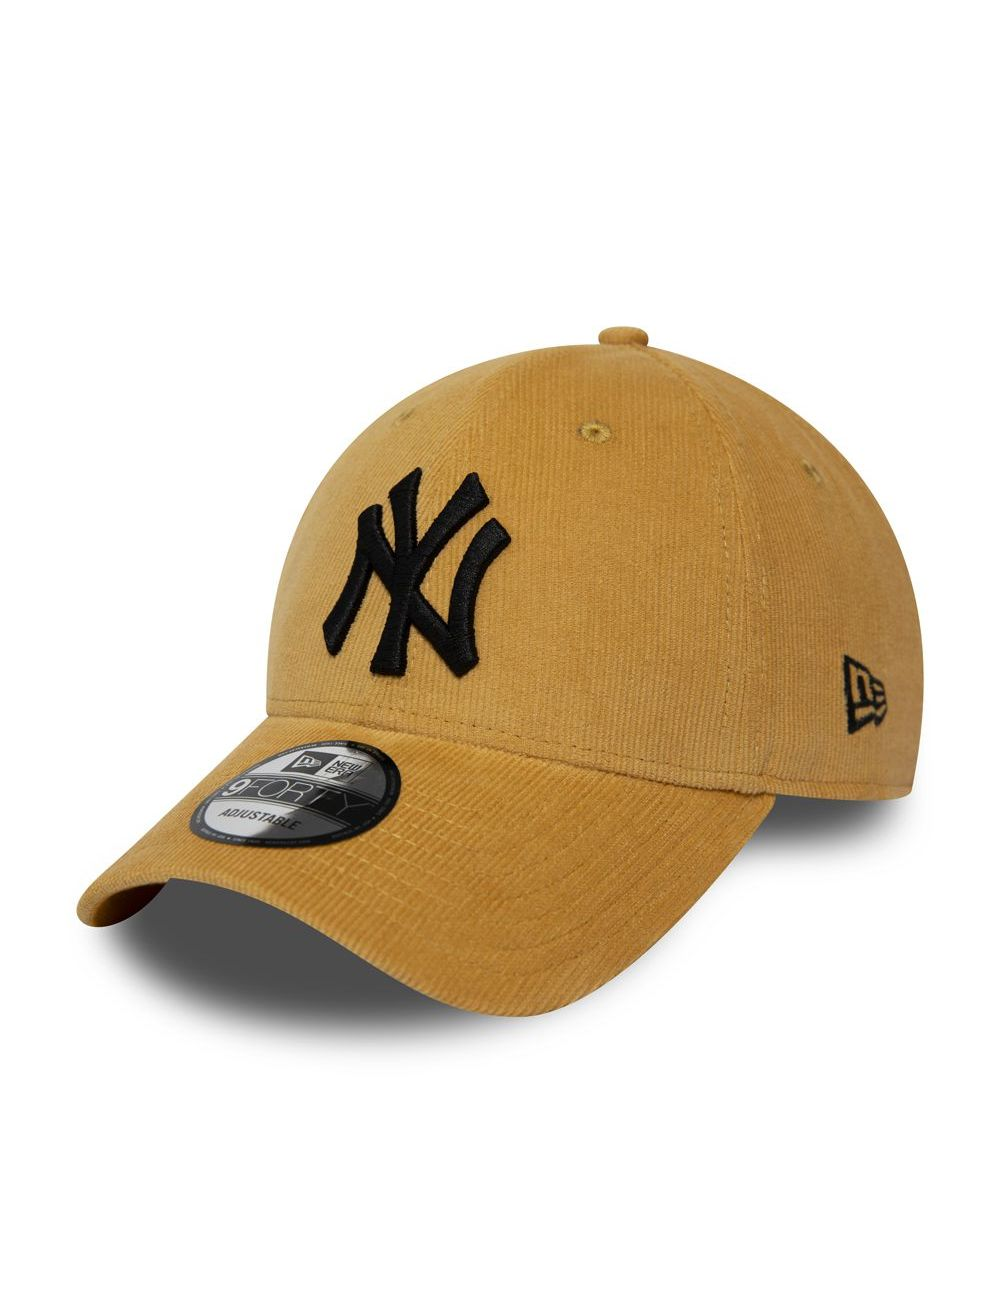 Casquette New Era 9FORTY New York Yankees Corduroy sable 12285527